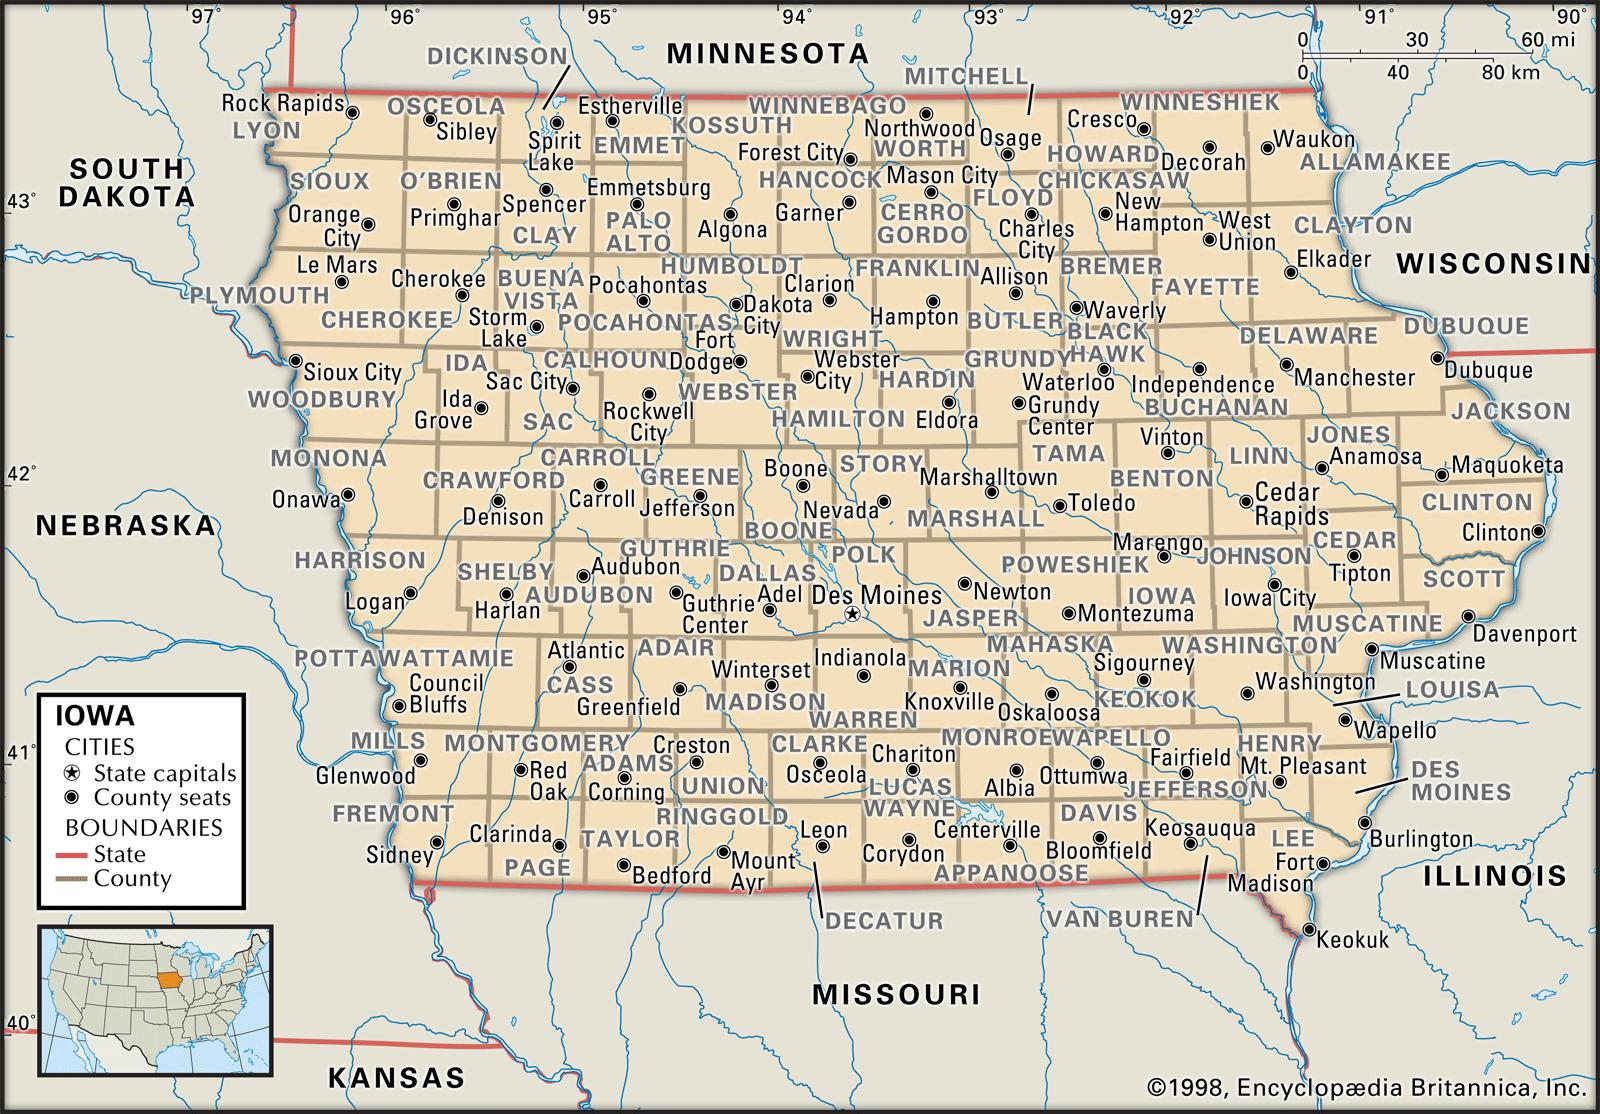 Jackson County Iowa Map.State And County Maps Of Iowa